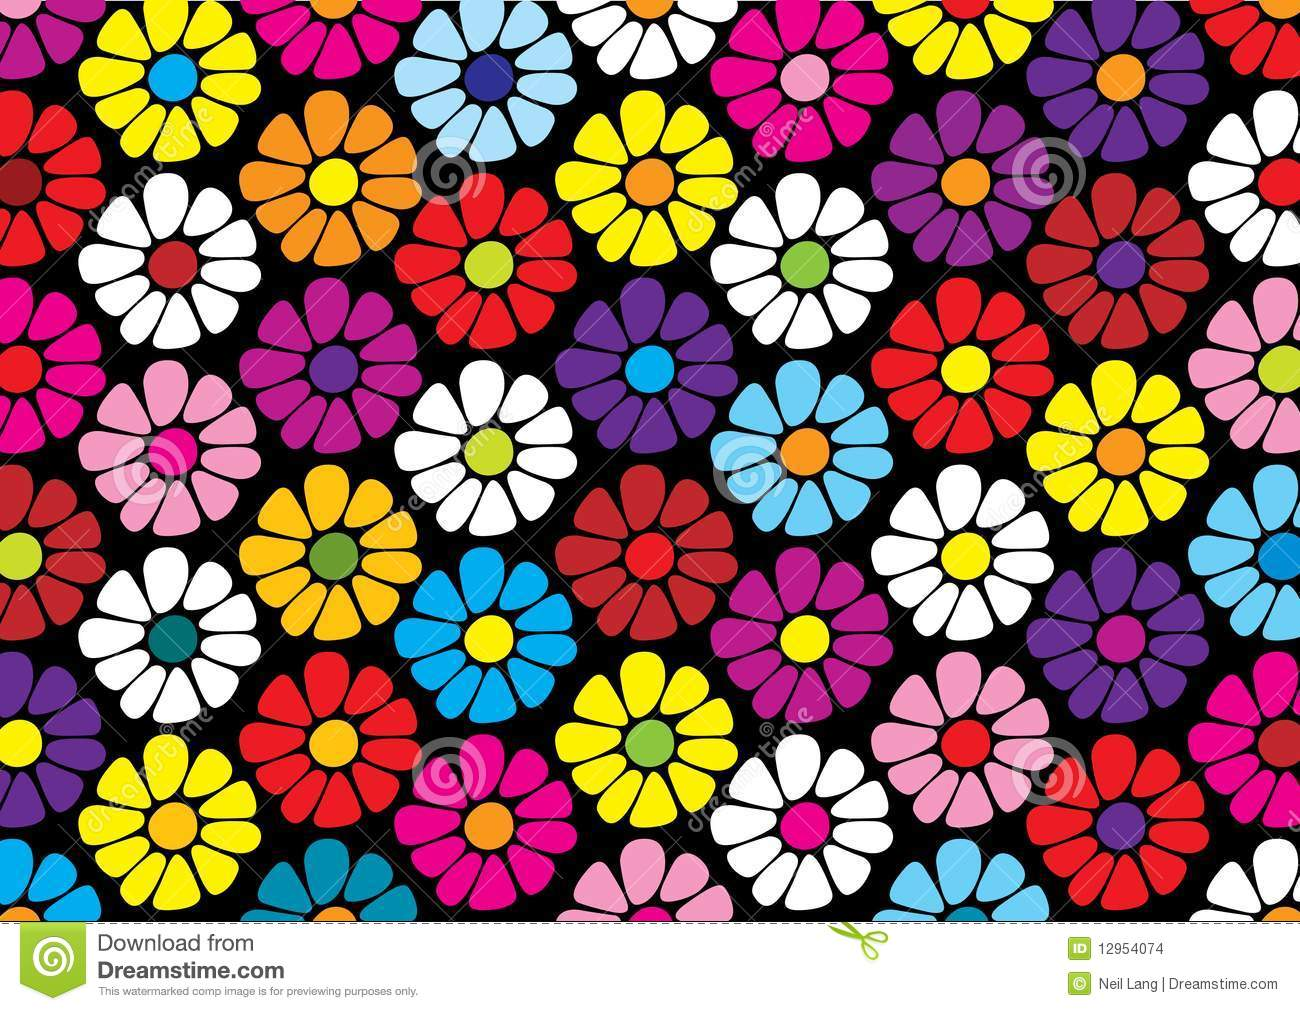 Repeat Pattern Of Bright Daisy Flowers Stock Vector Illustration